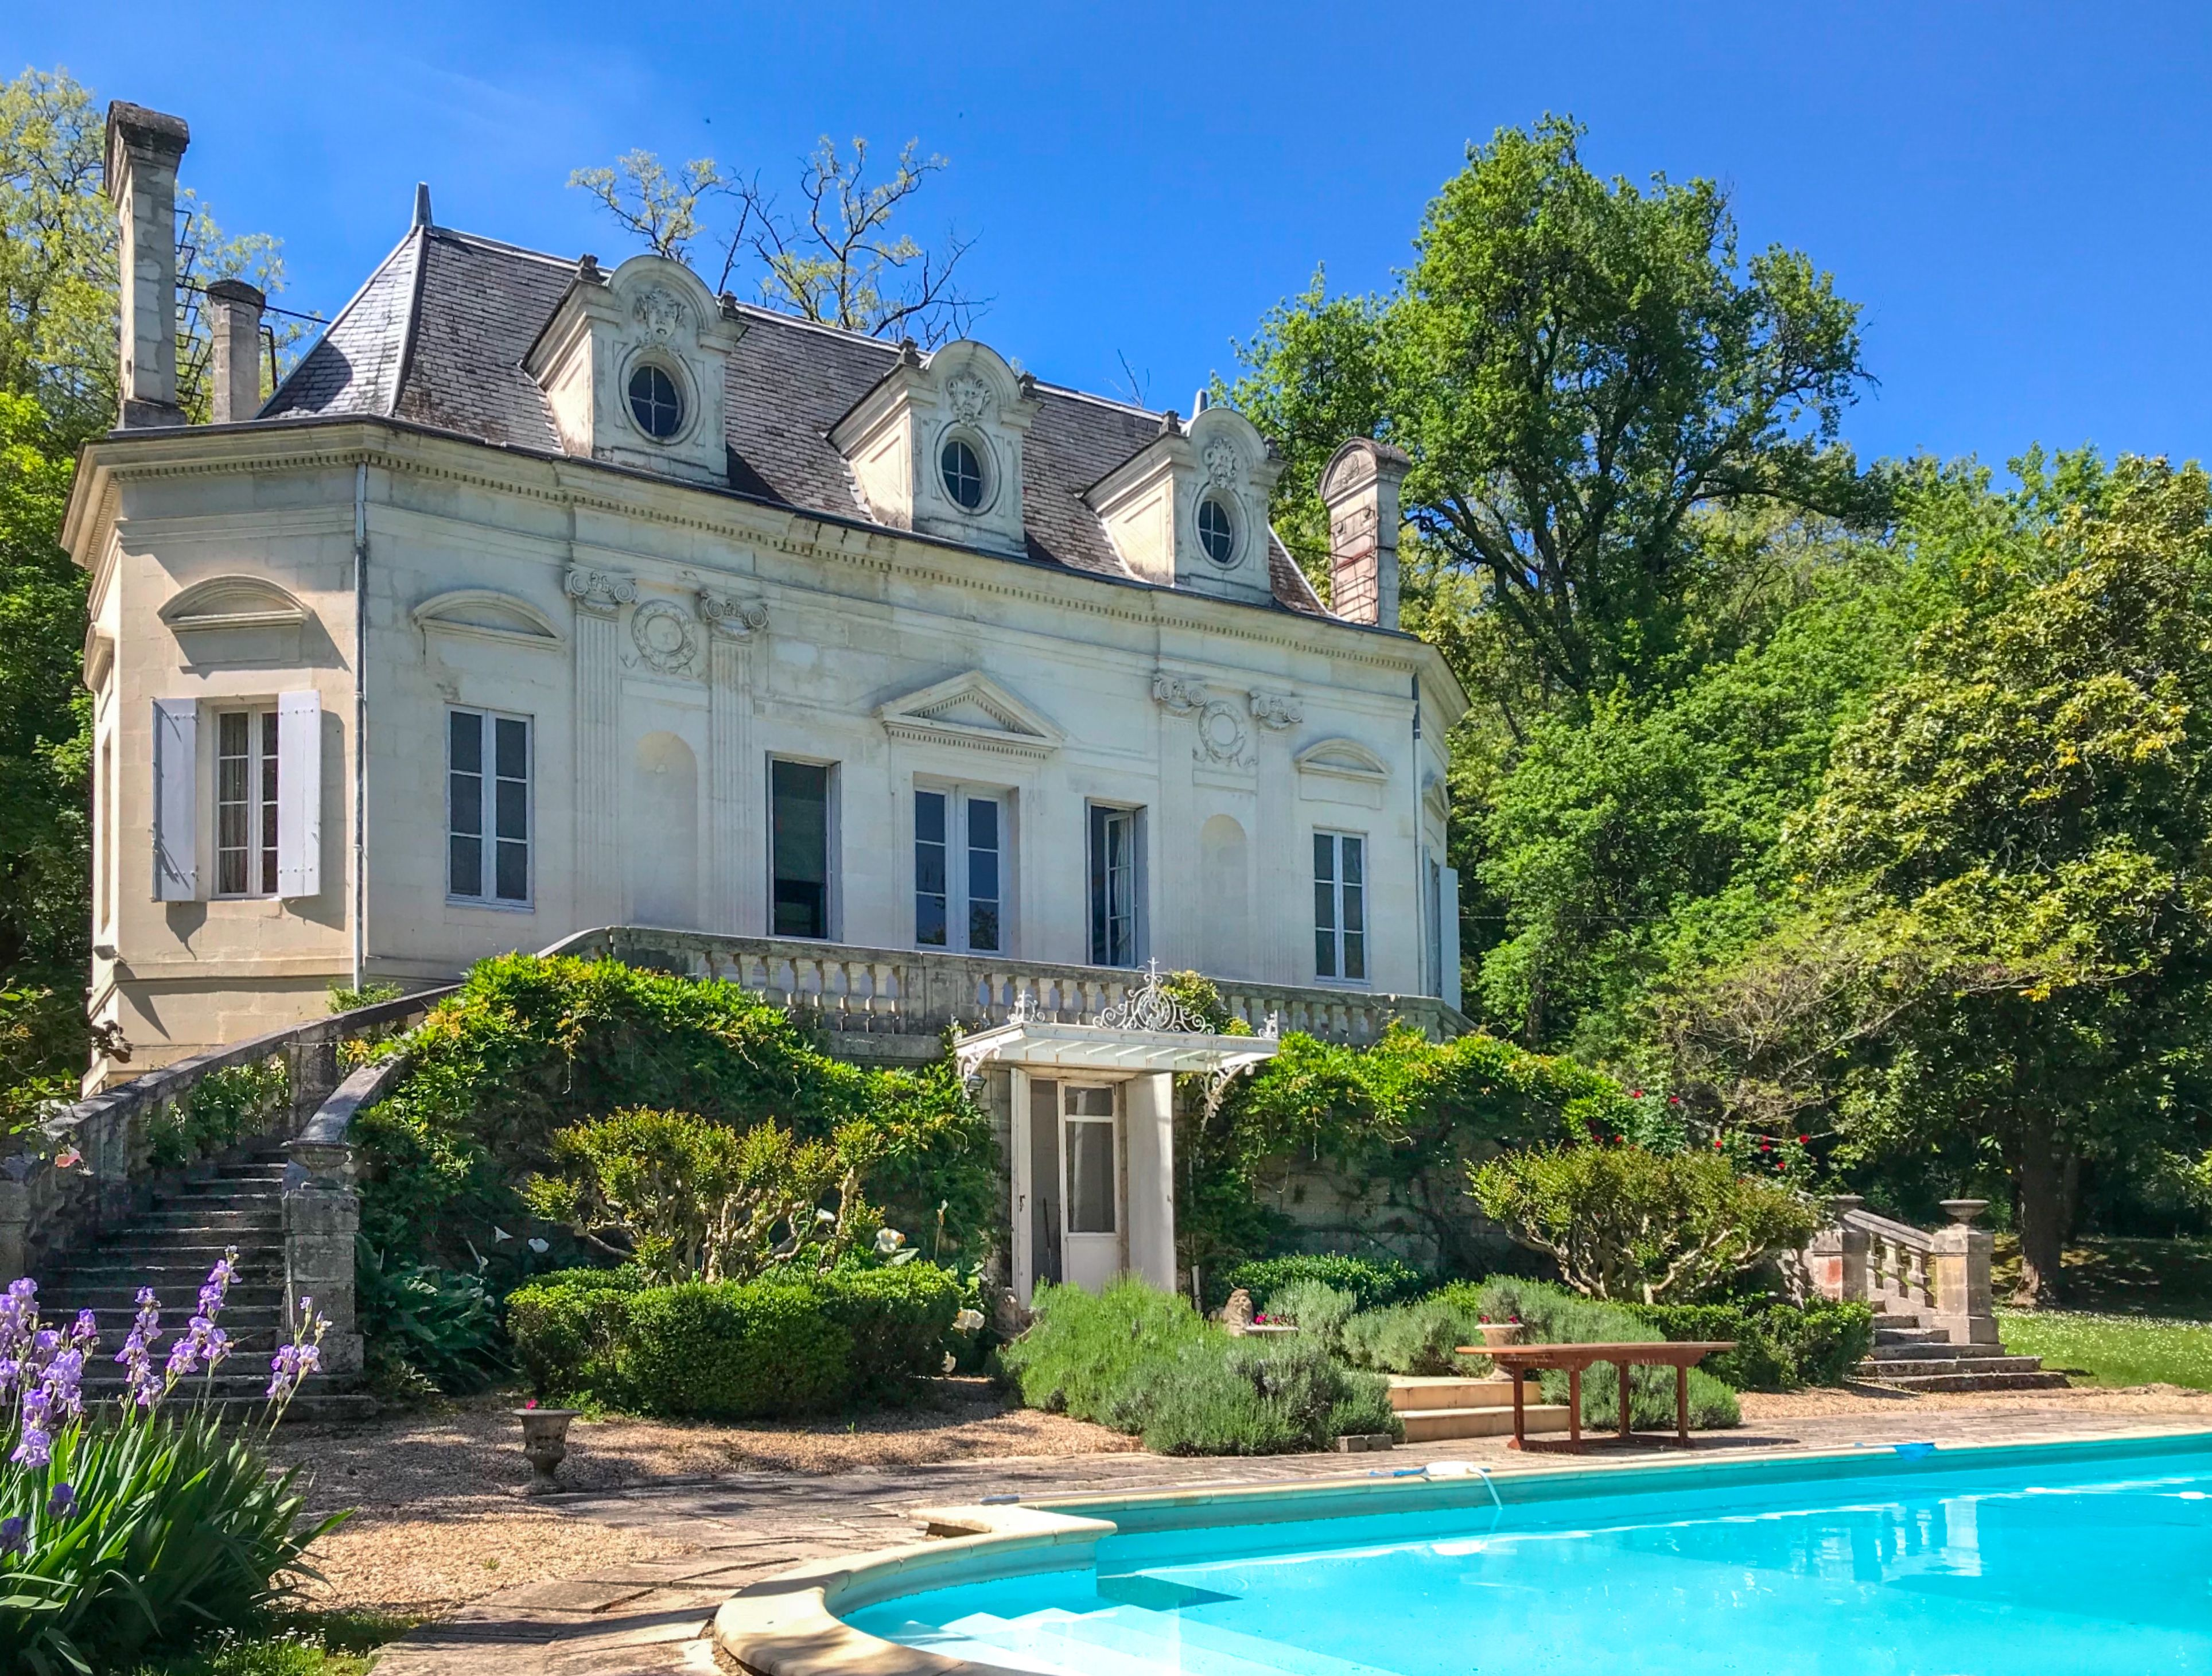 Delightful 18th Century Chateau With Outbuildings Guardian S House And Pool Near Coutras Chateau Castle French Chateau Homes French Mansion French Property